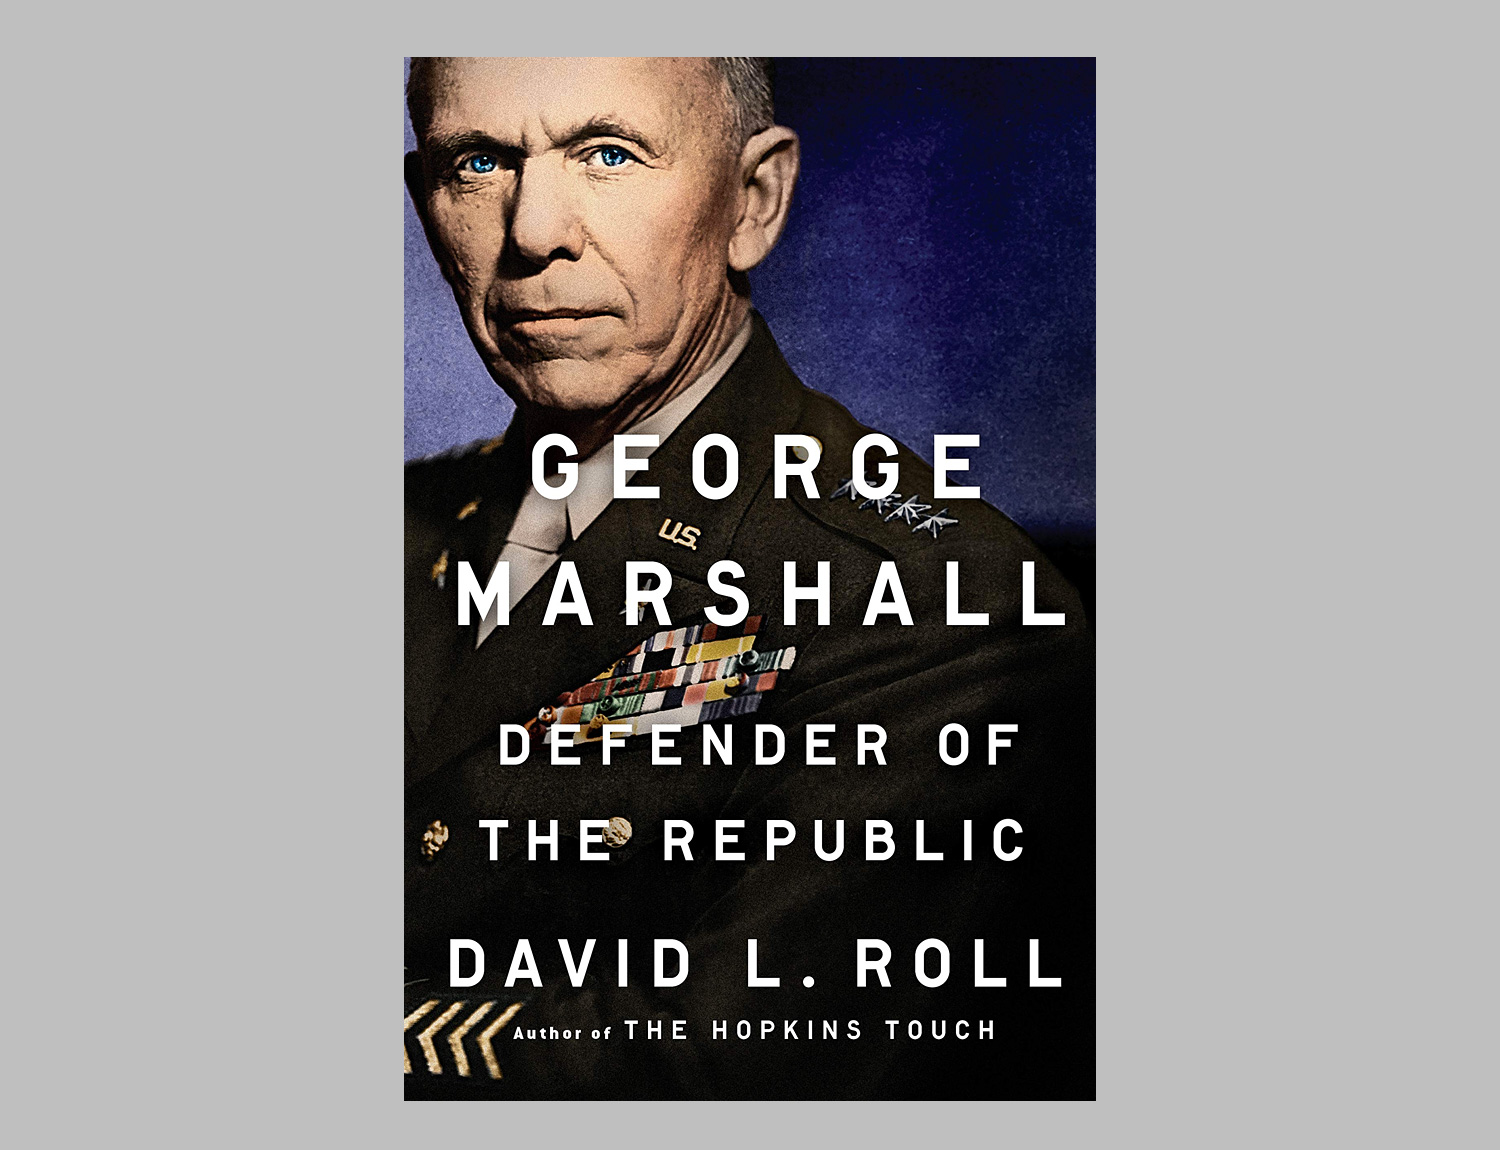 George Marshall: Defender of the Republic at werd.com